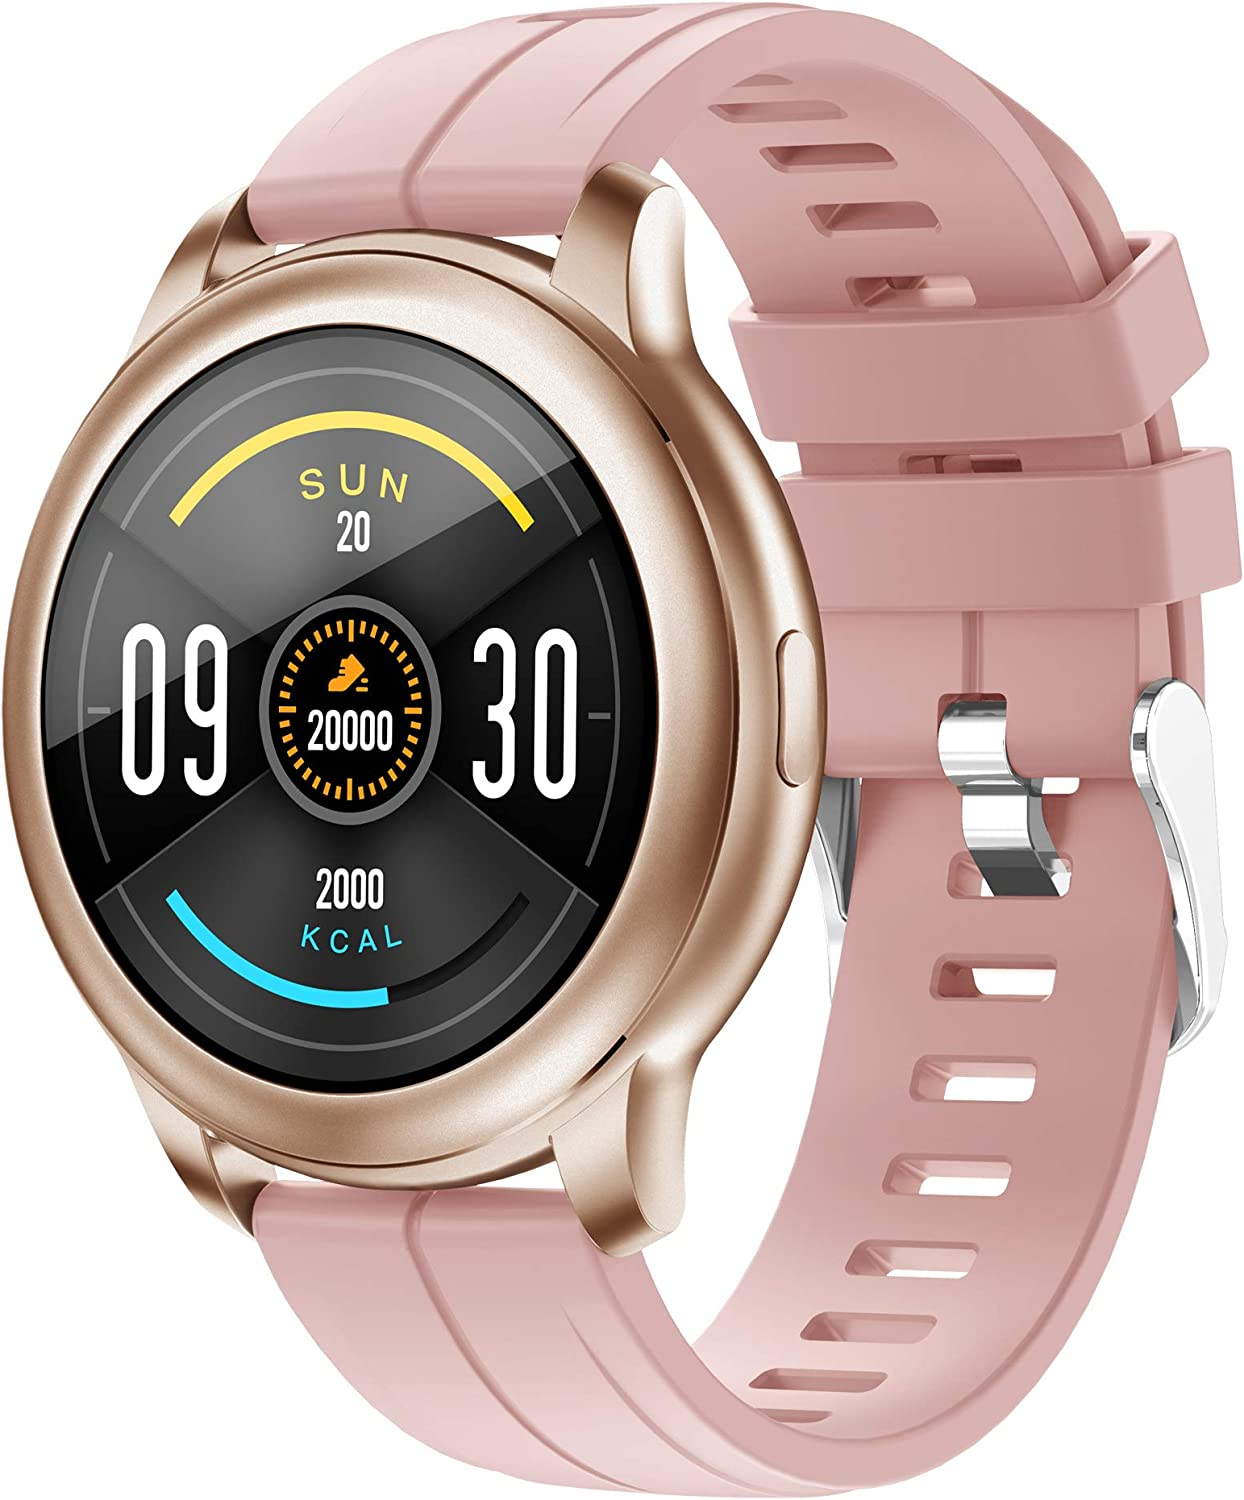 Smart Watch for Android Max 86% OFF Phones Call Monitor Rate Regular dealer Heart Bluetooth